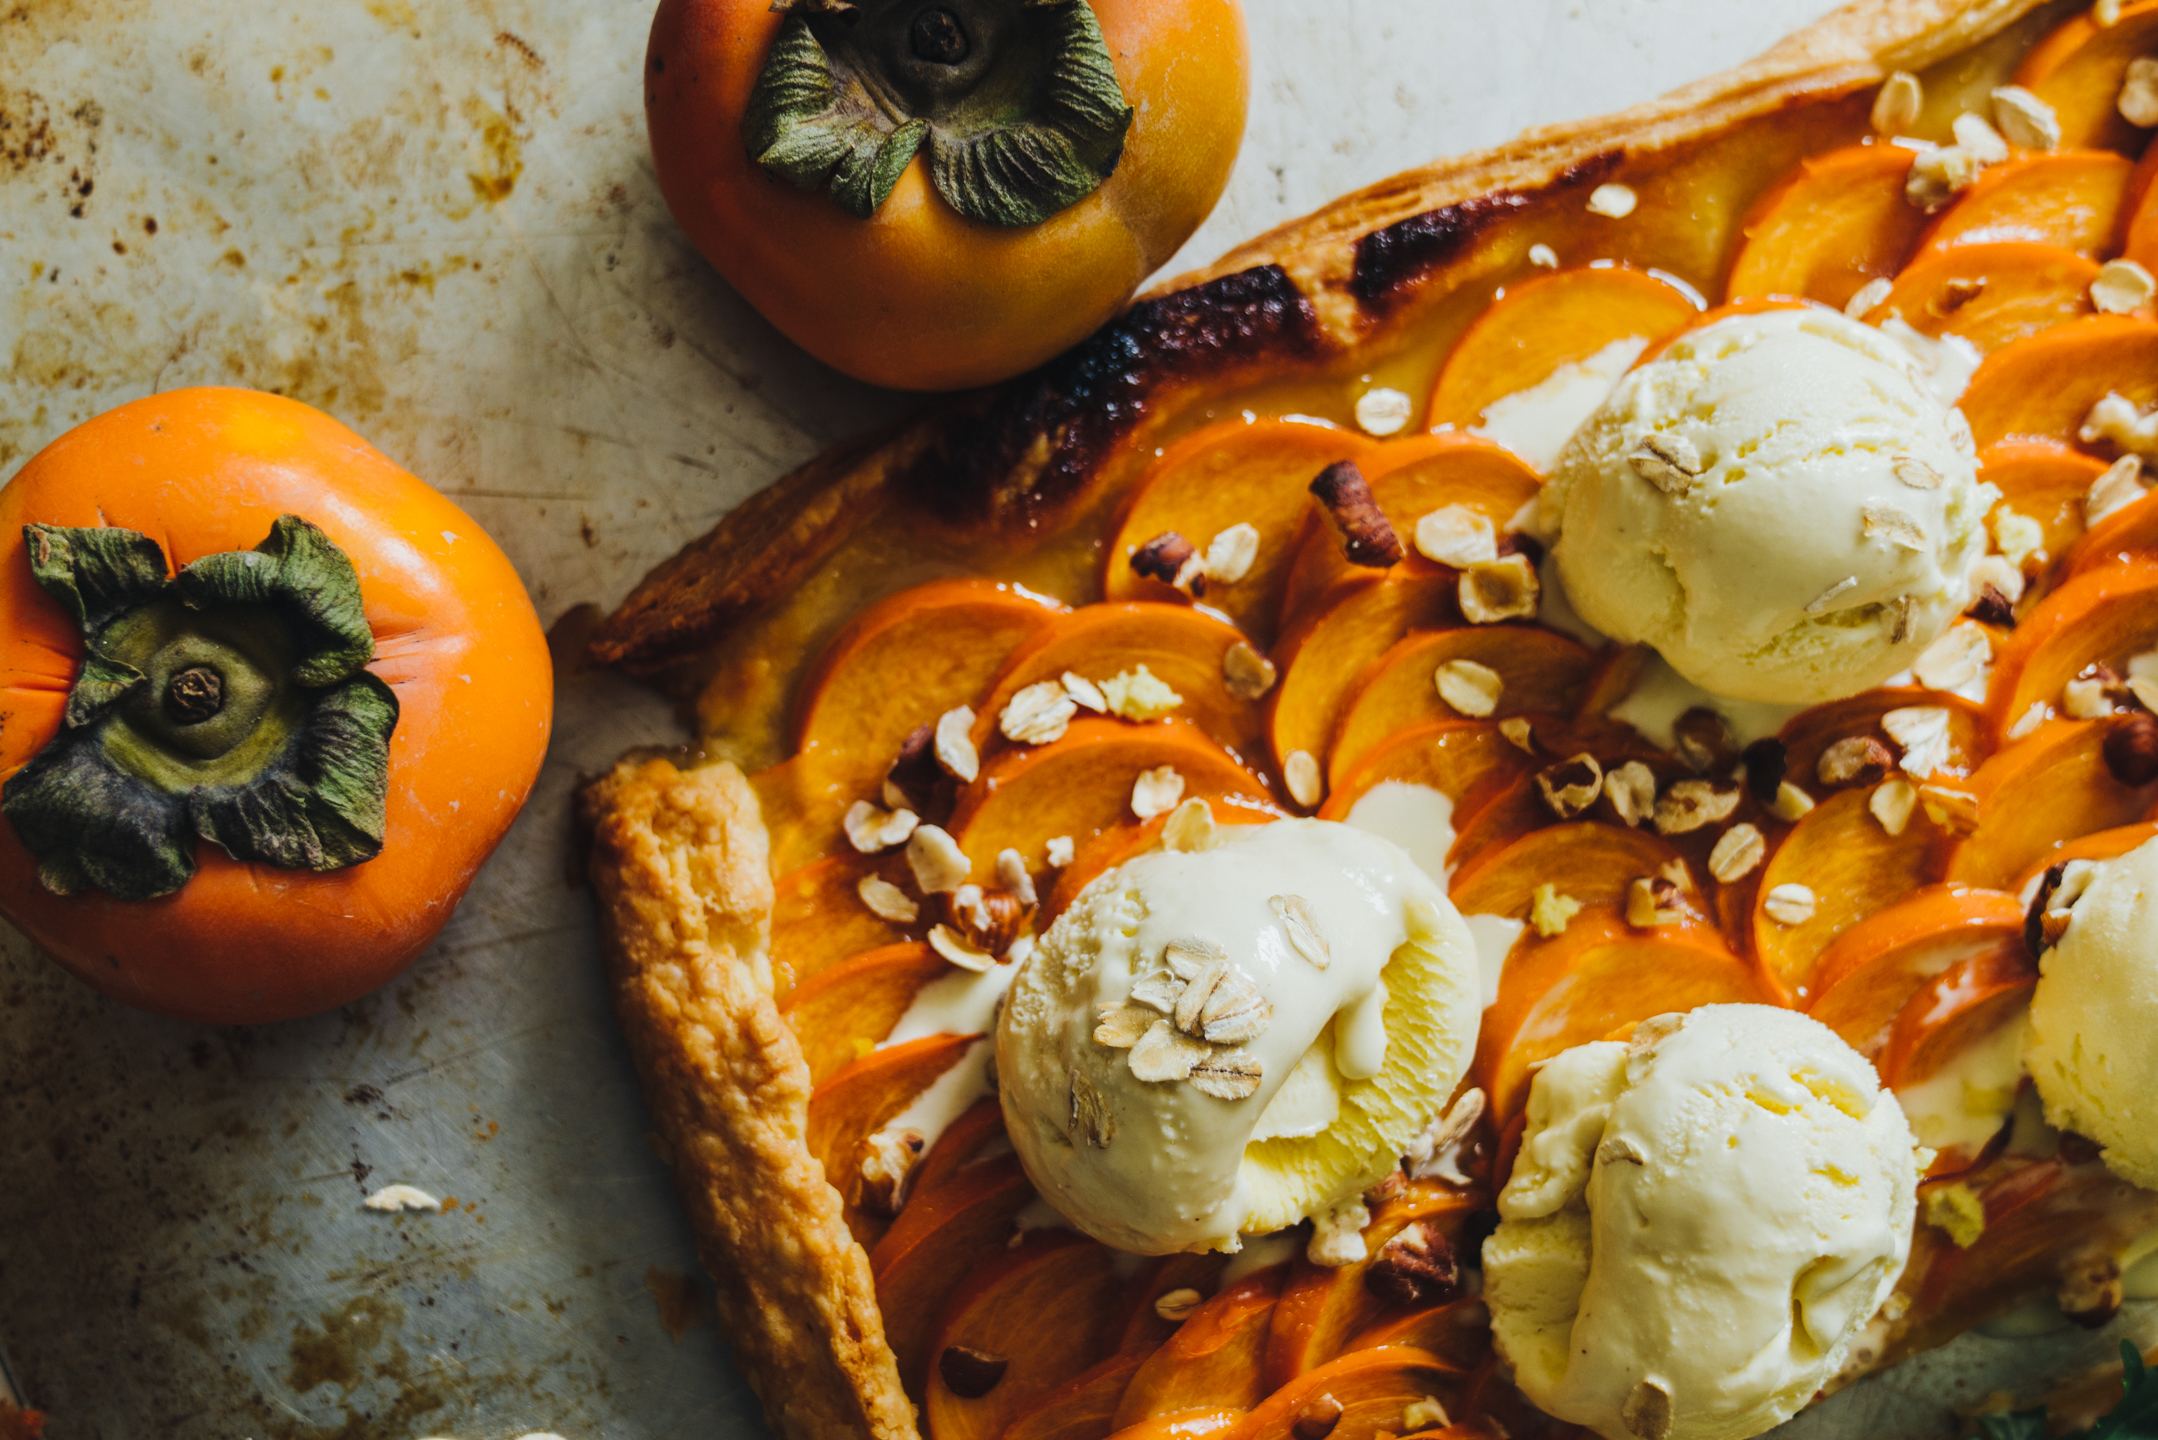 FOOD AND FLOWERS: ONE PERSIMMON TART TWO WAYS: DESSERT AND SAVORY MAIN DISH